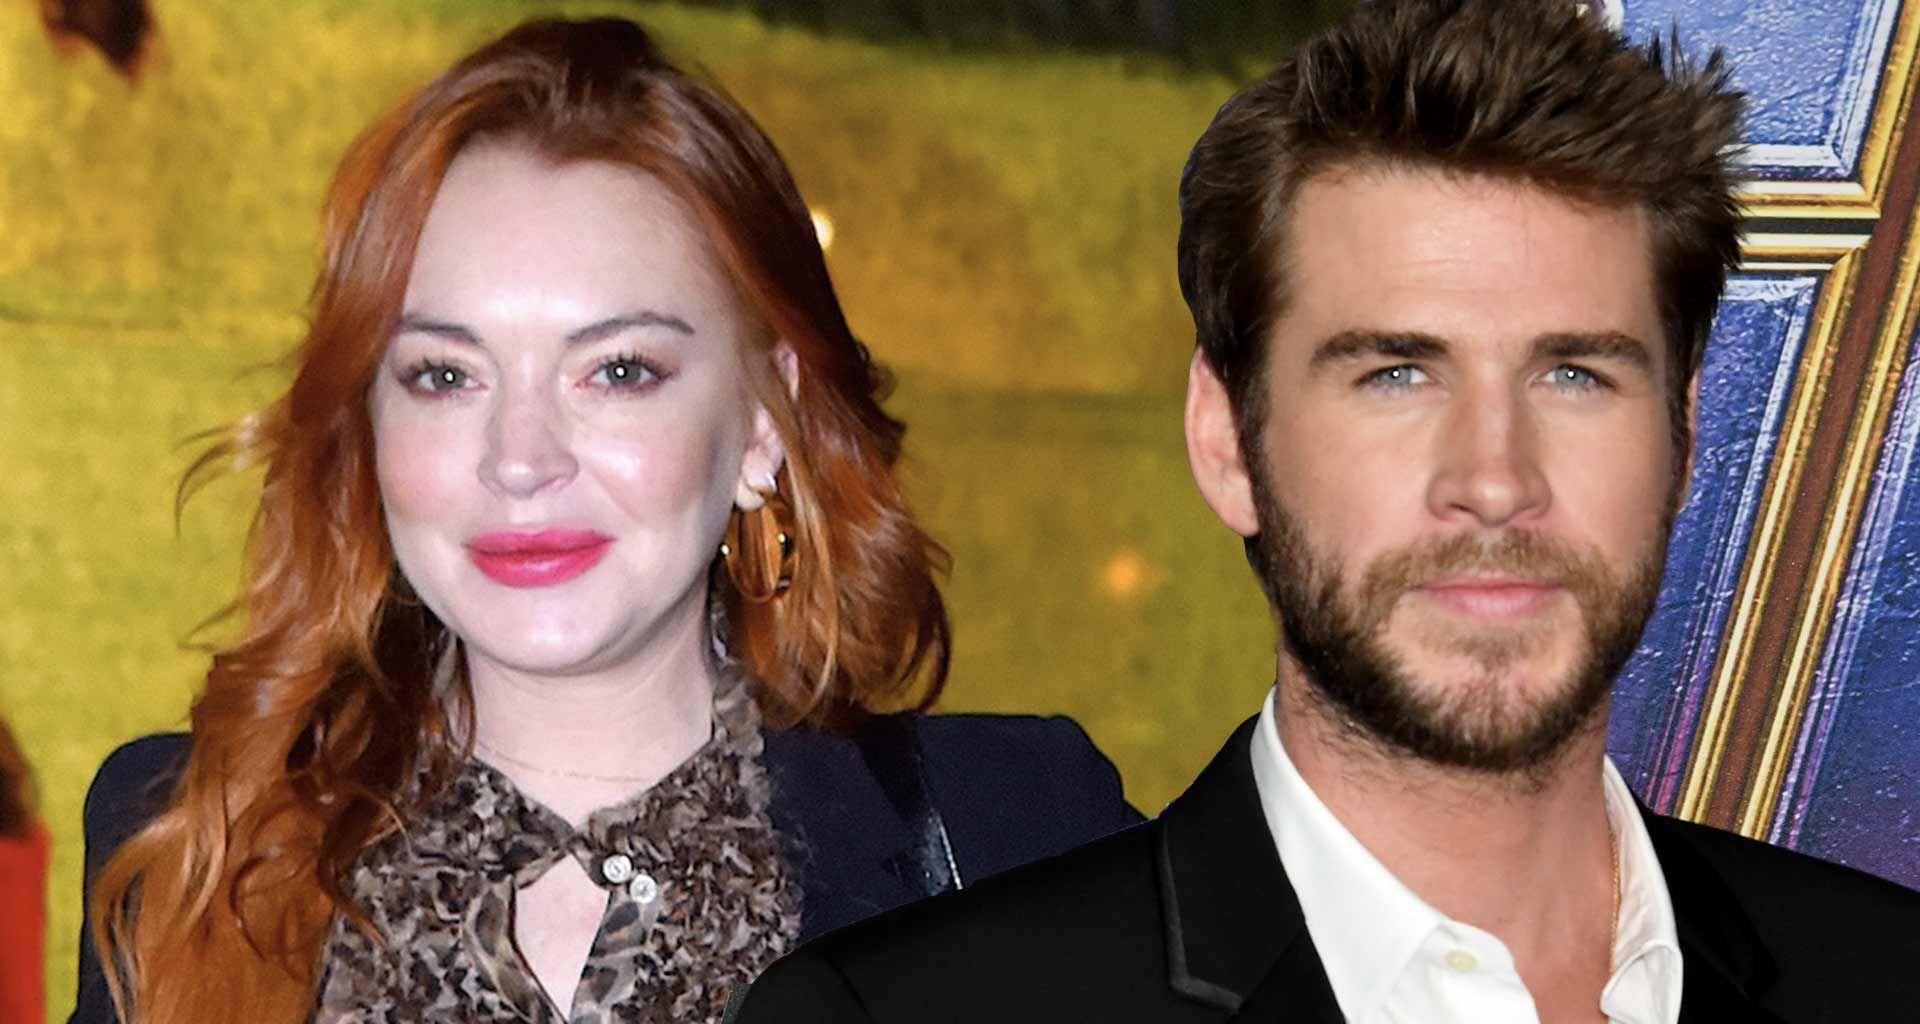 Lindsay Lohan Flirts With Liam Hemsworth Again And Gets Mocked For It!